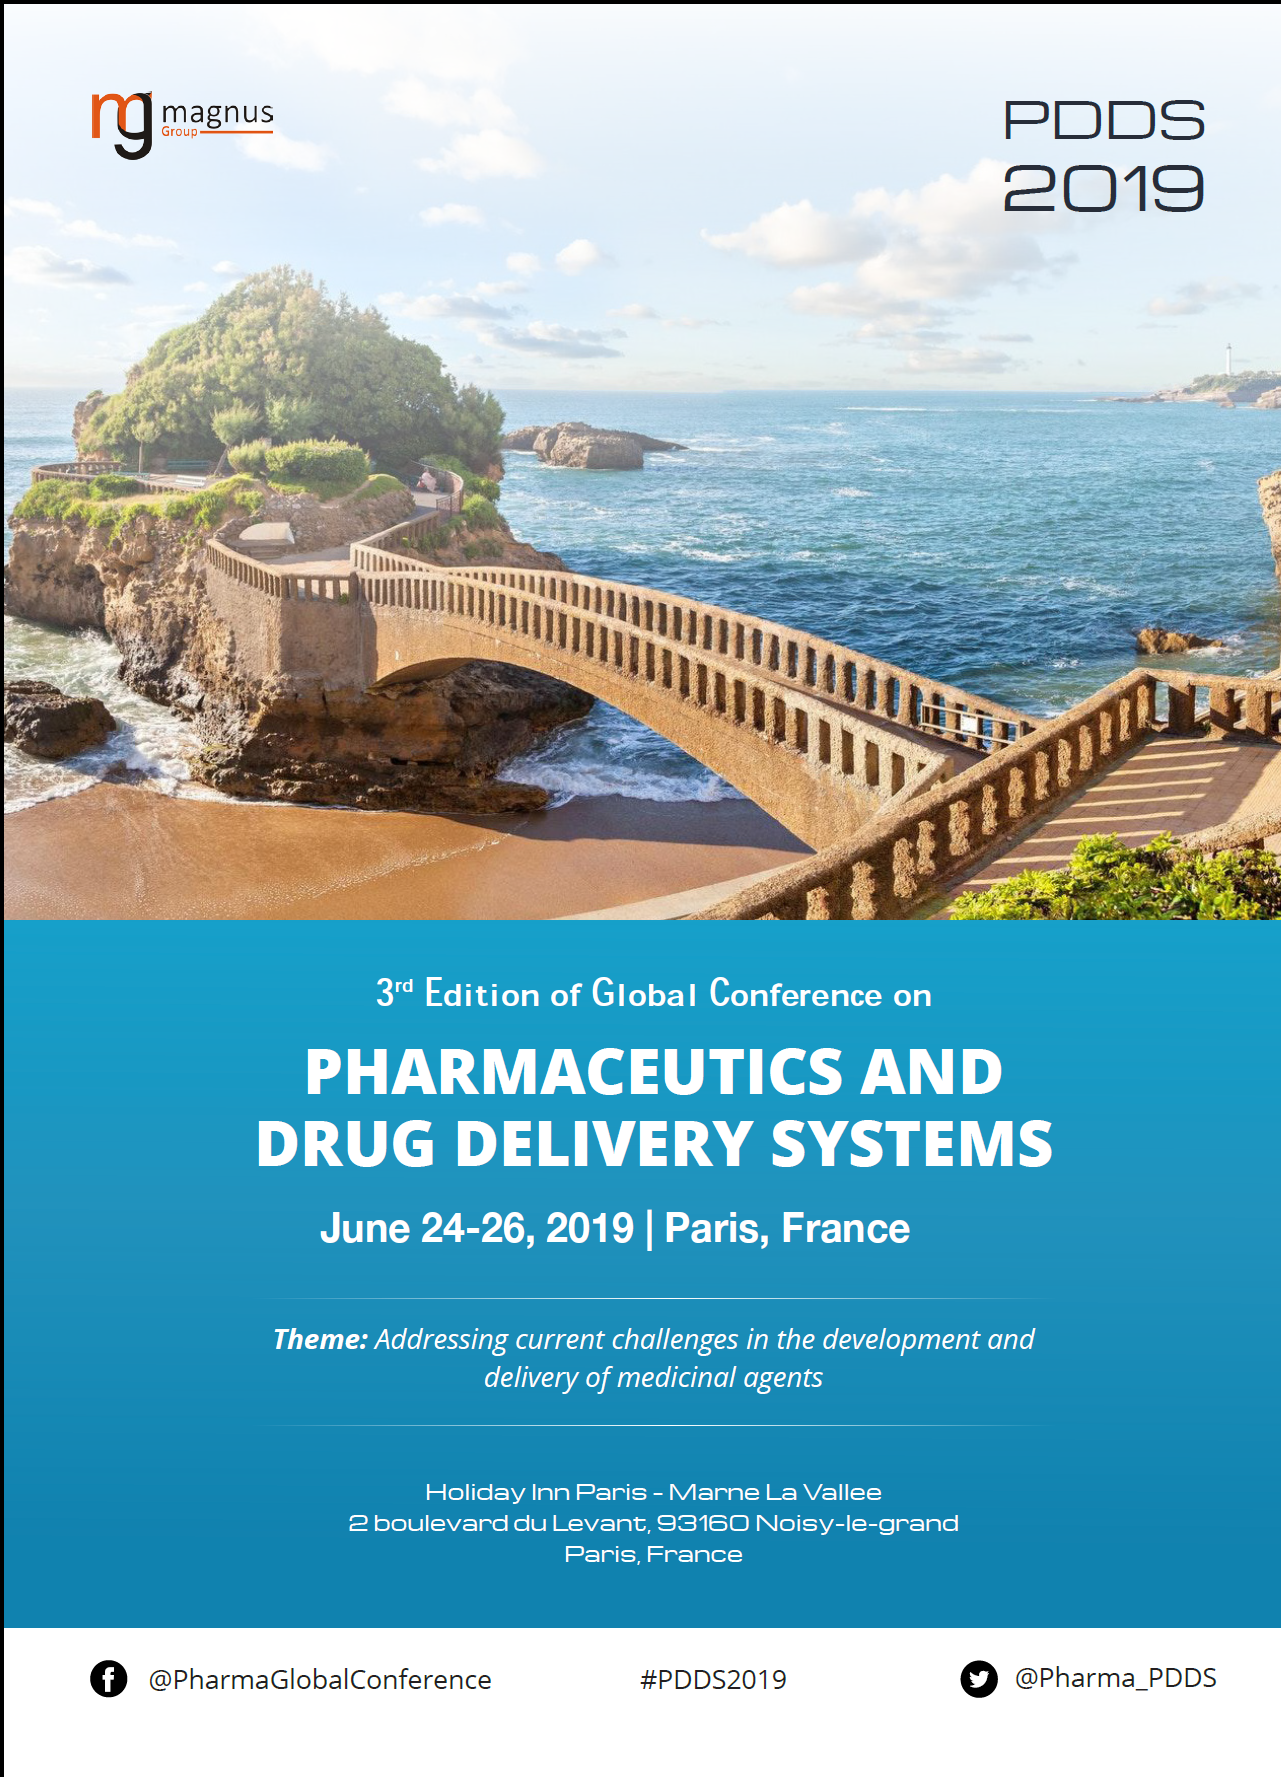 3rd Edition of Global conference on Pharmaceutics and Drug Delivery Systems Program